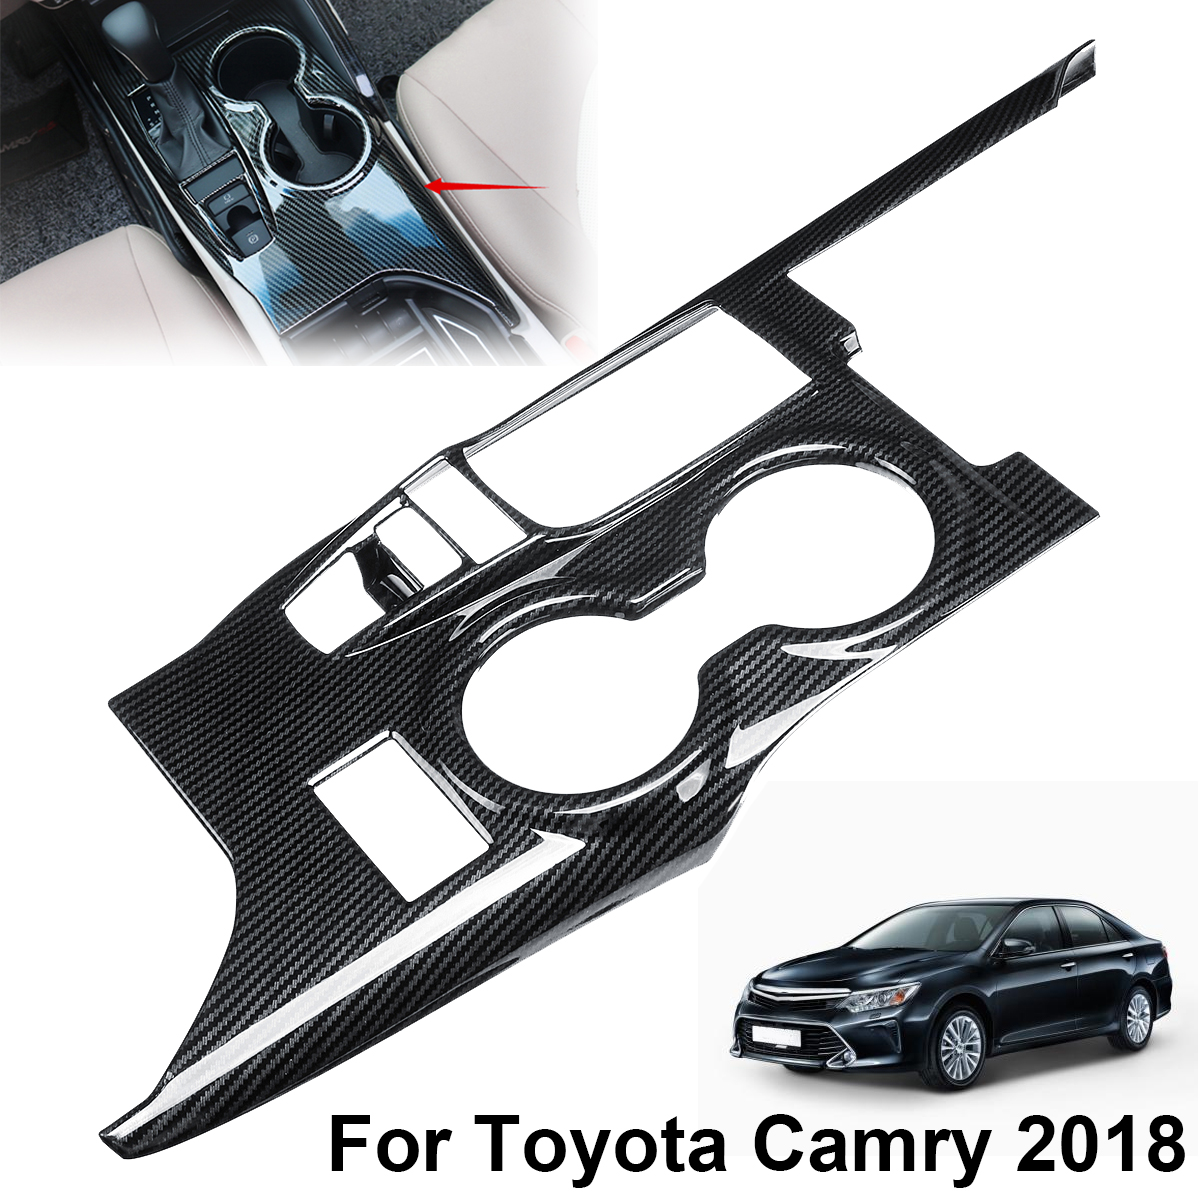 Audew Carbon Fiber Car Interior Gear Shift Box Panel Cover Trim for Toyota Camry 2018 Auto Interior Mouldings Parts Accessories fit for toyota camry 2018 carbon fiber style interior gear shift knob cover trim interior mouldings interior accessories